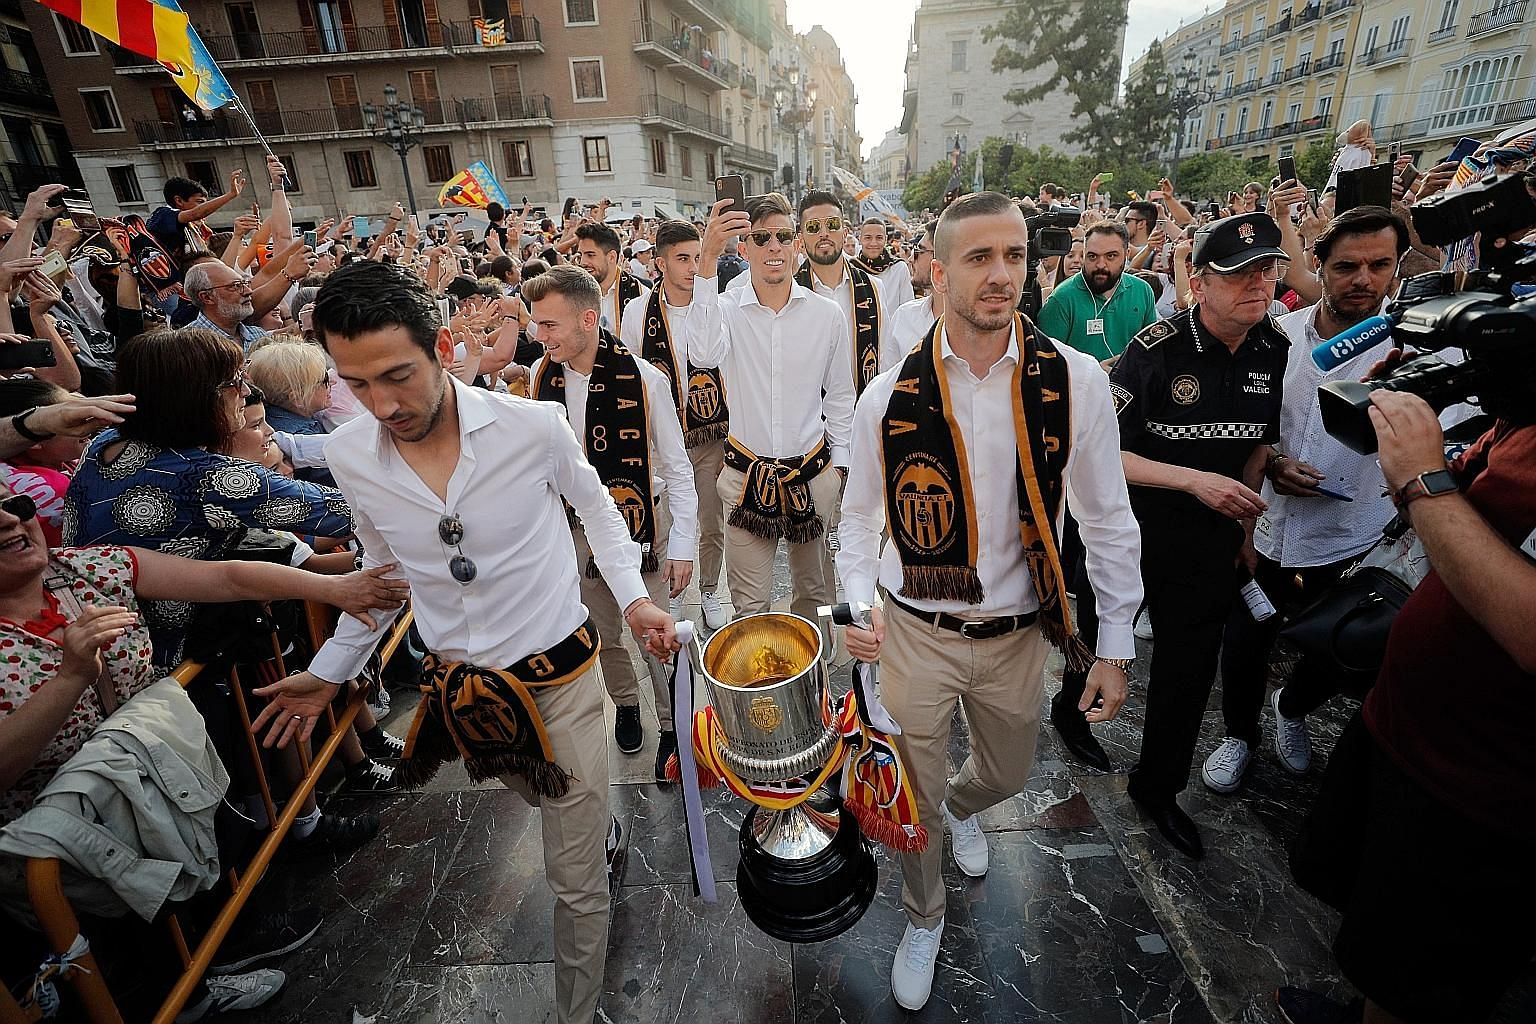 Above: Dani Parejo, Valencia's former captain who was sold to Villarreal, and Jaume Domenech carrying the Spanish King's Cup - the club's first trophy in 11 years - during celebrations in May last year. Below: Ferran Torres, taking on Real Madrid's F